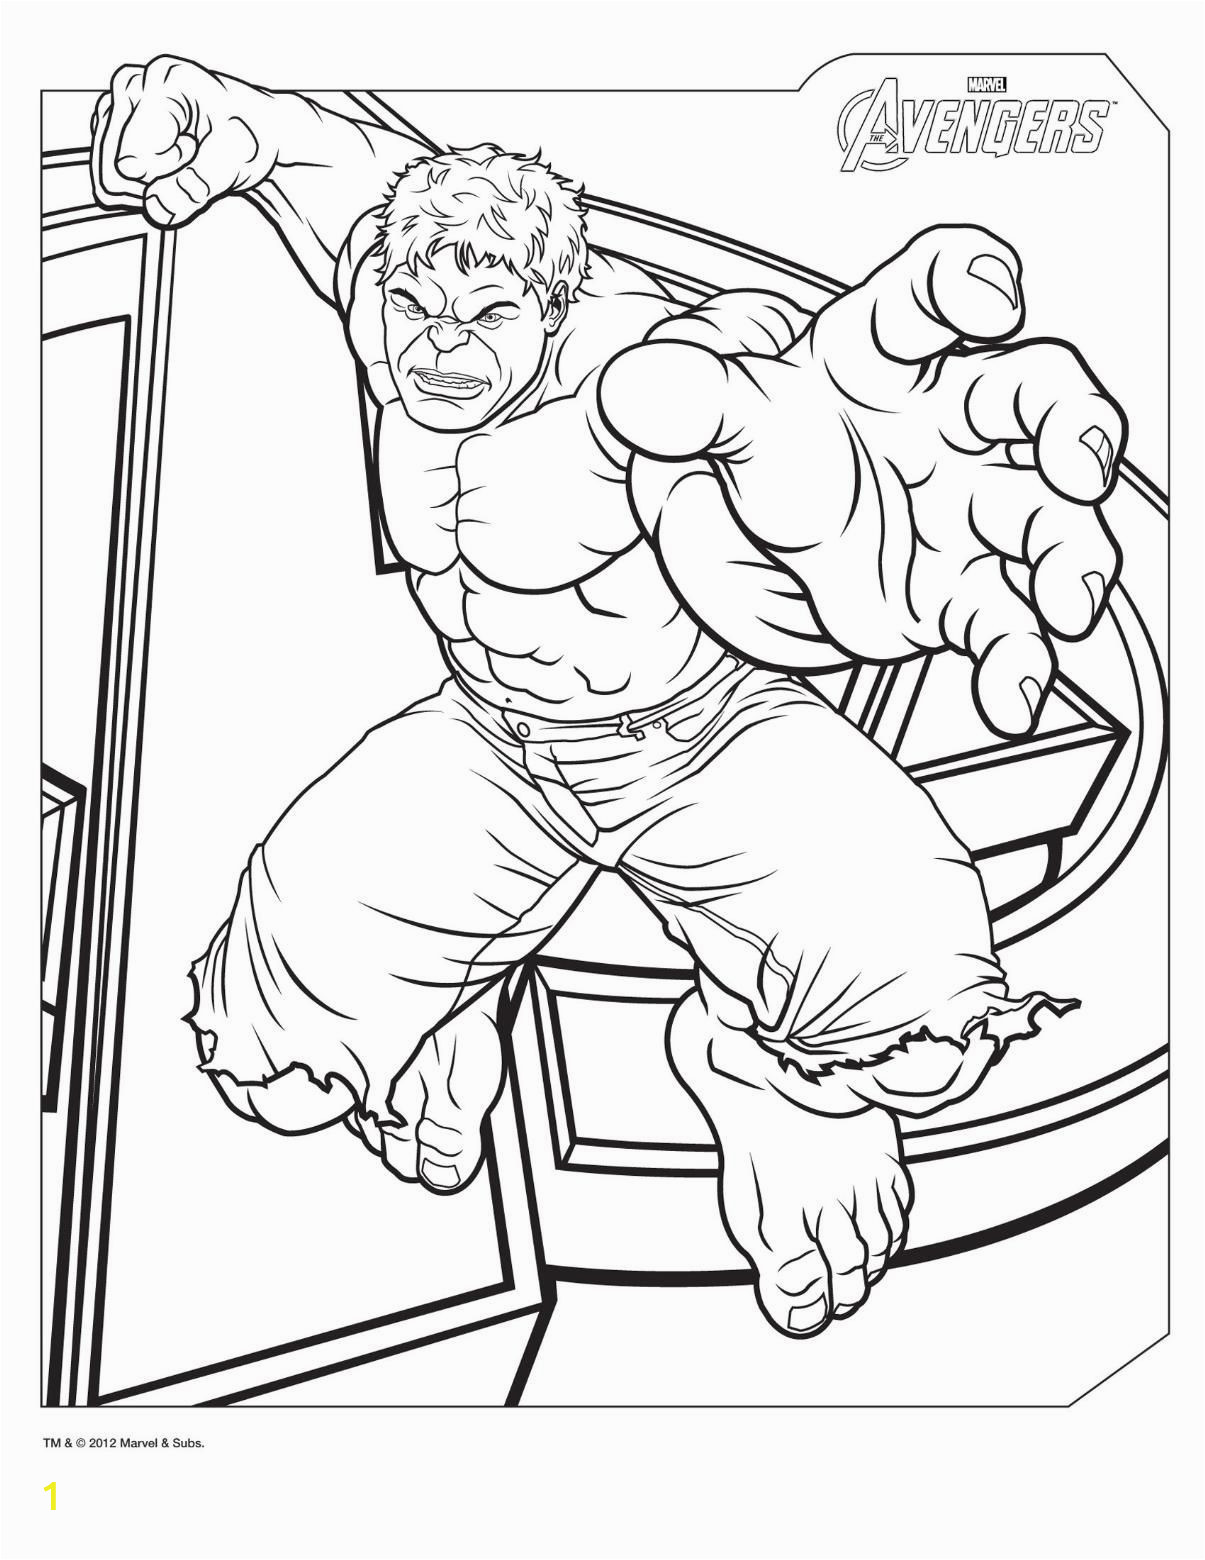 Hulk Coloring Sheet to Print Free Printable Hulk Coloring Pages for Kids with Images